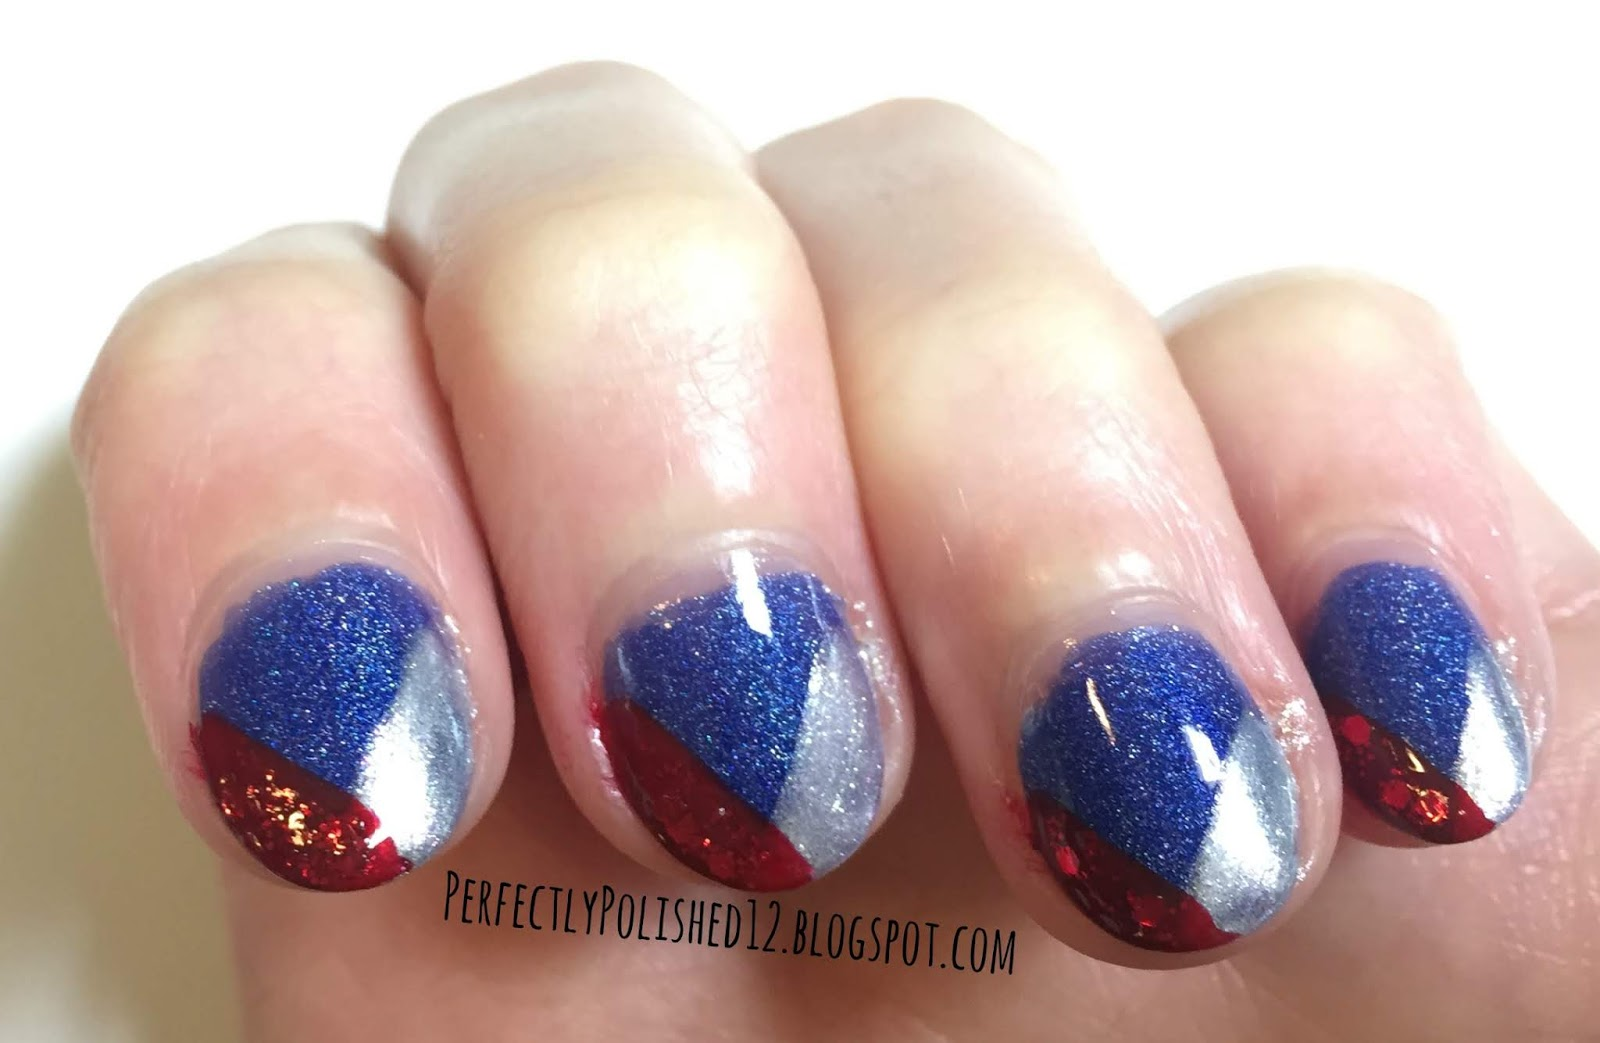 Perfectly Polished 12 4th Of July Nail Art